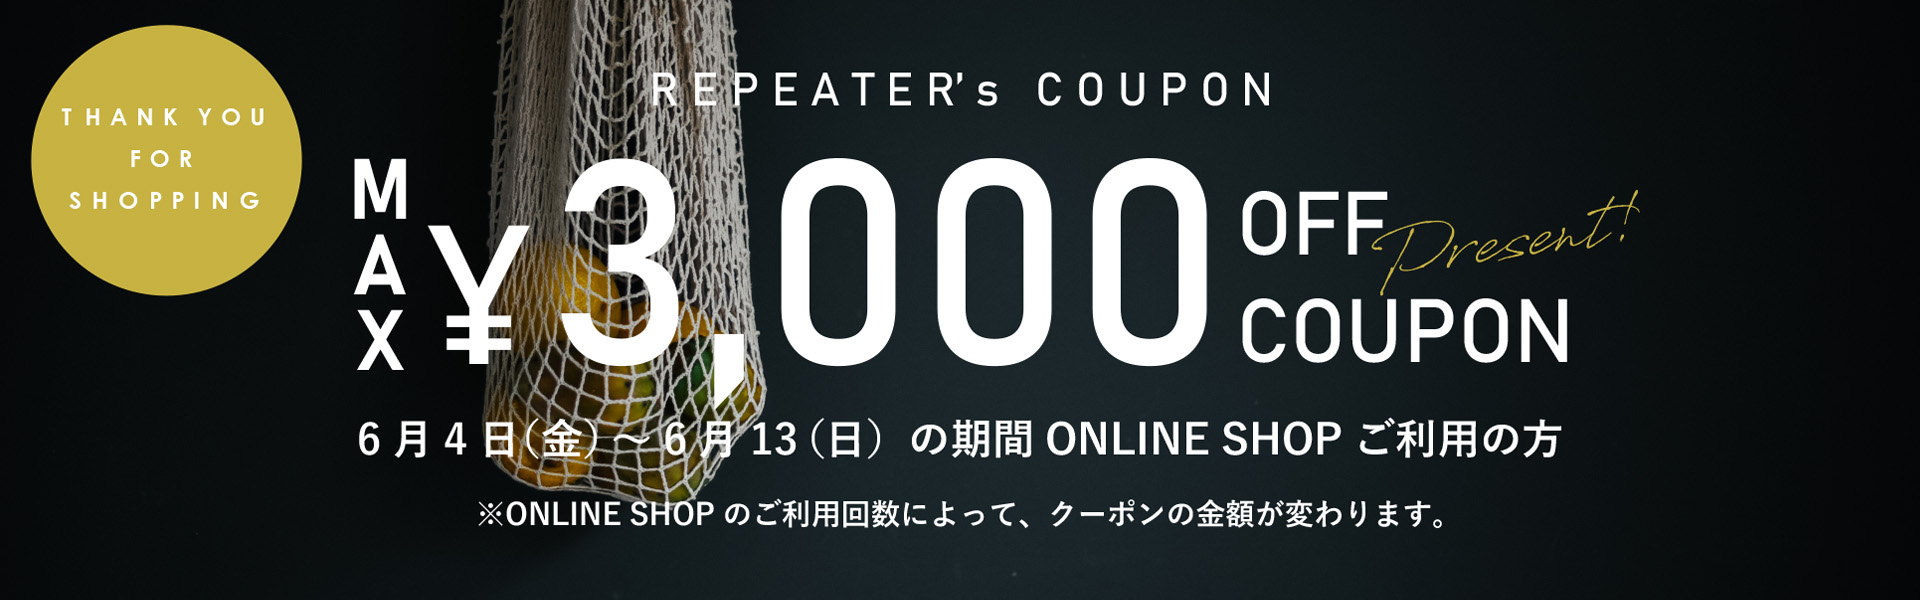 REPEATER COUPON